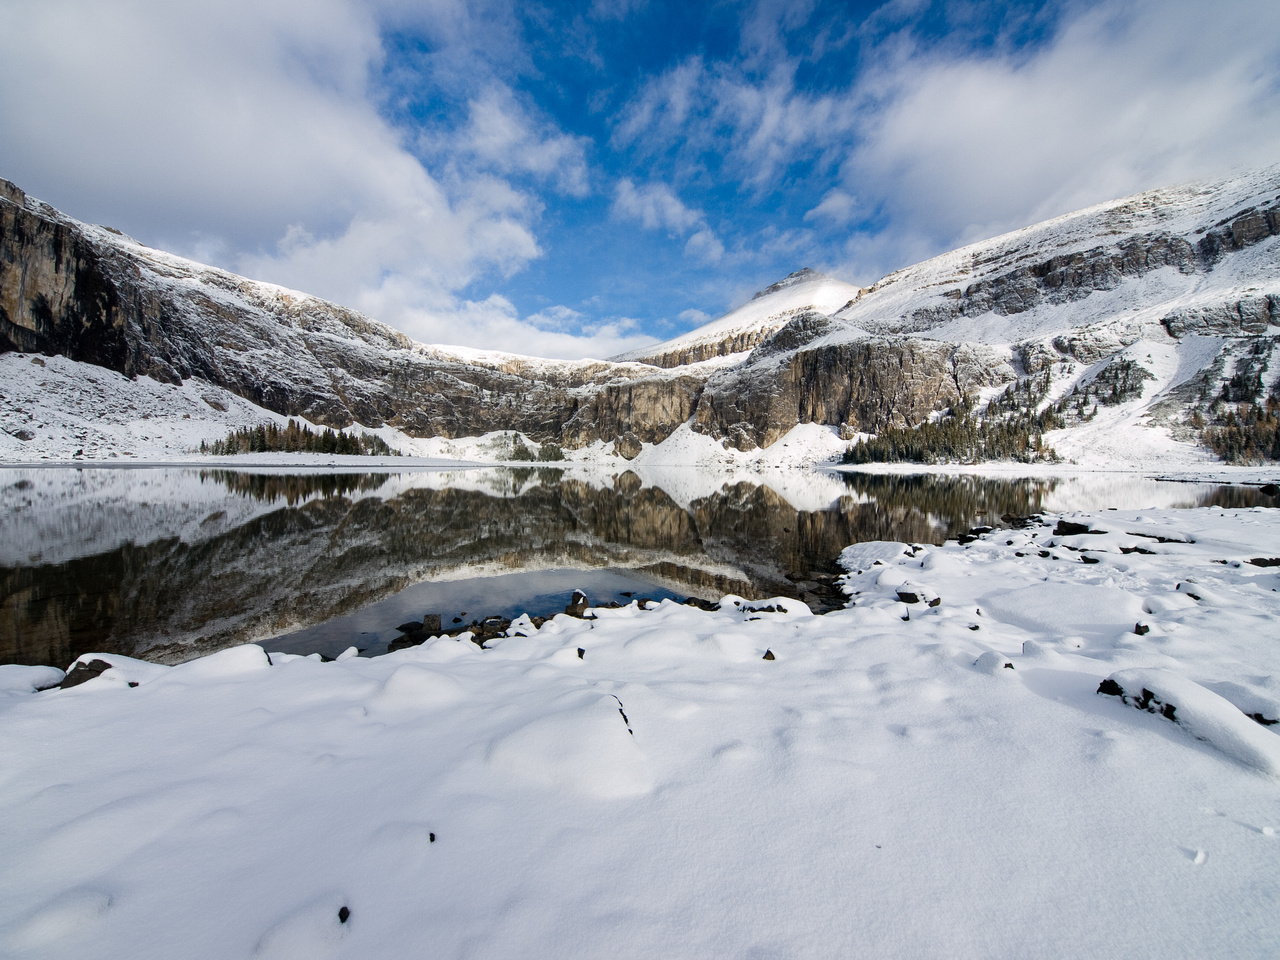 One more wide-angle shot of Rockbound Lake with some blue sky and fresh snow.